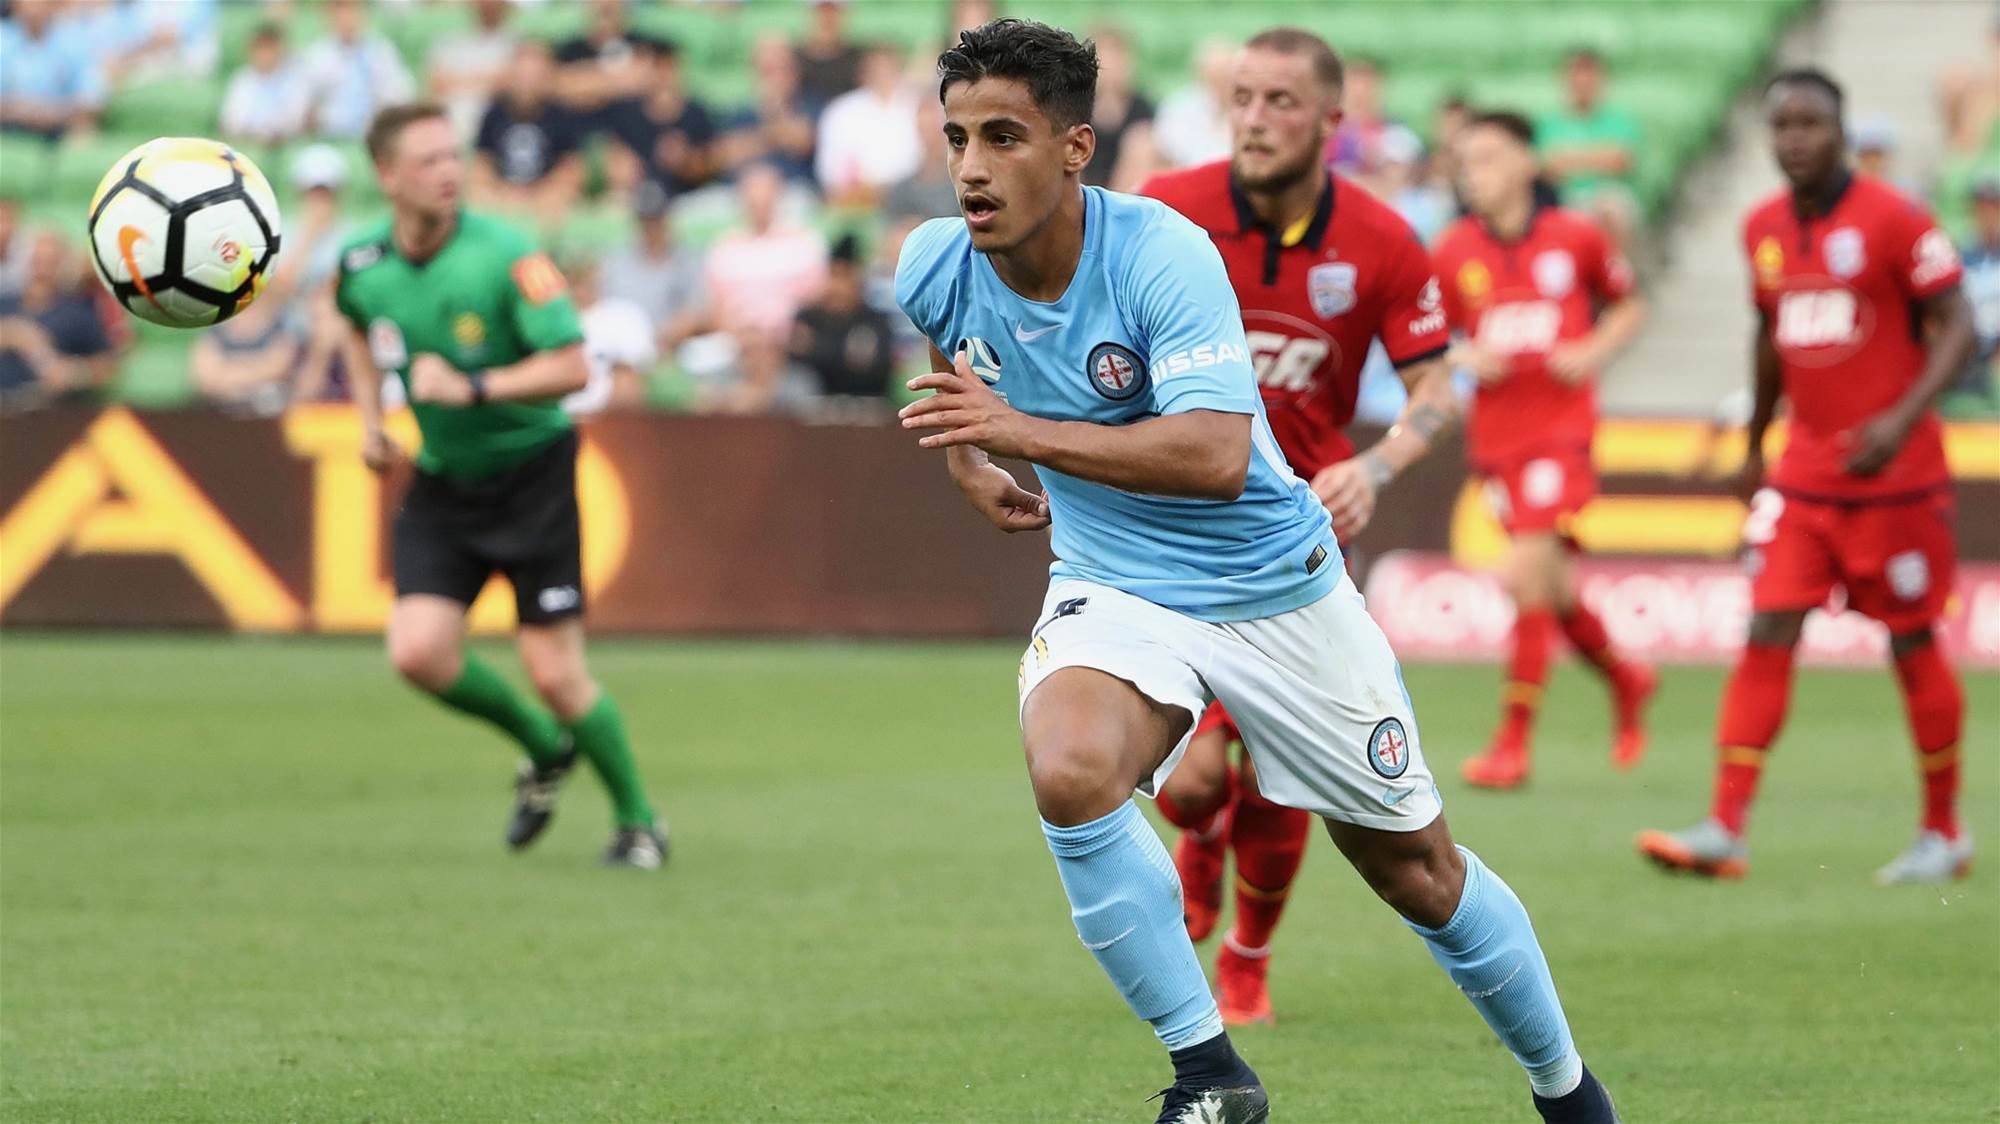 Van Marwijk: Arzani can make a difference.